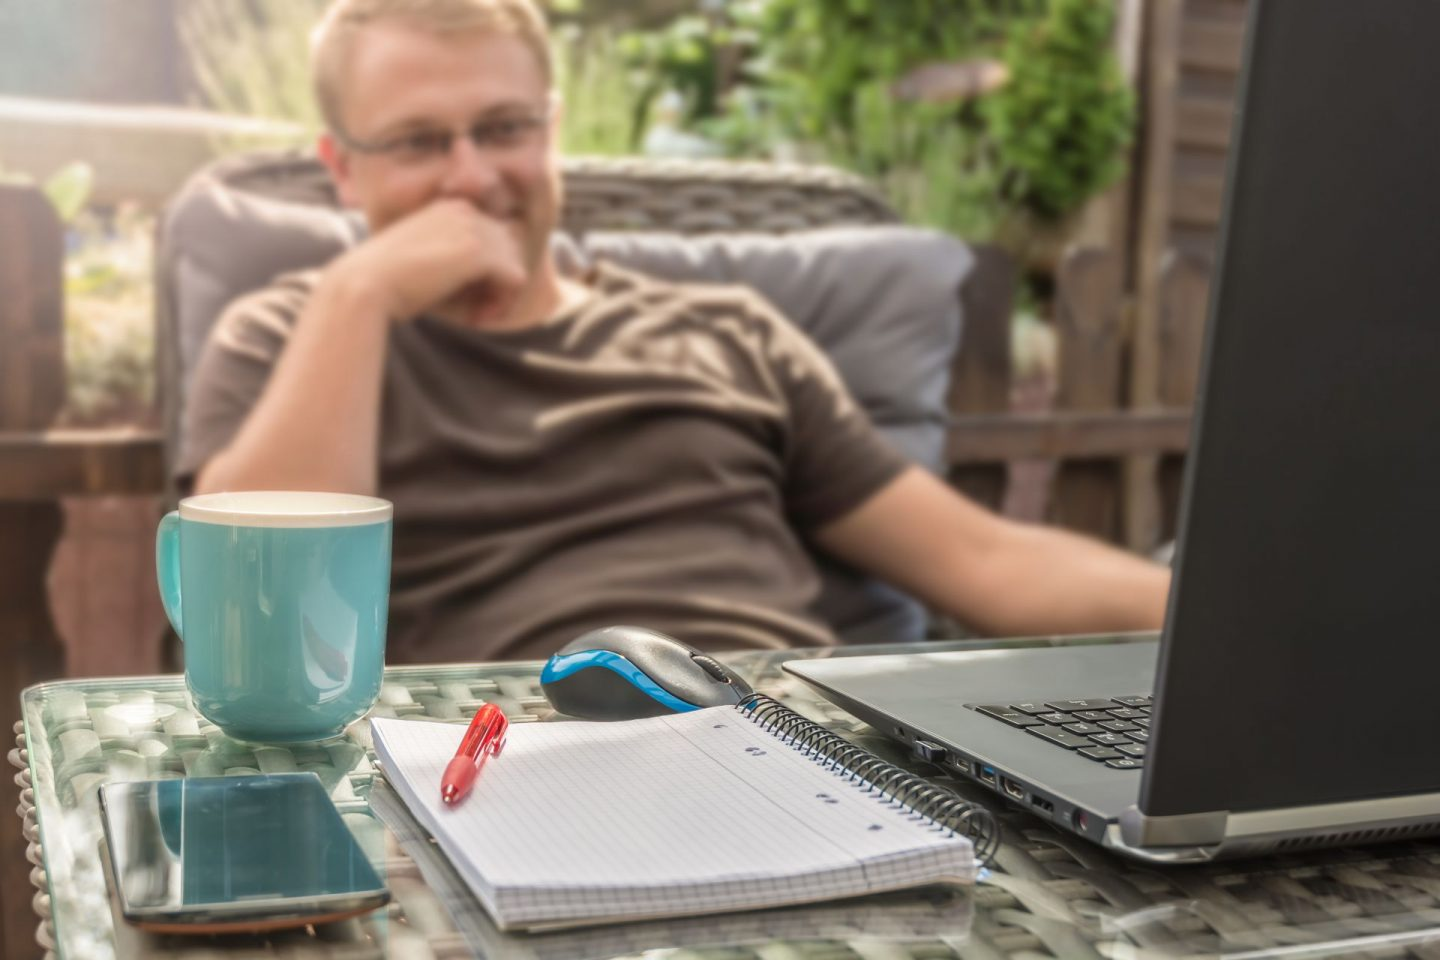 Flexible working during COVID-19. Image of a man working from home.